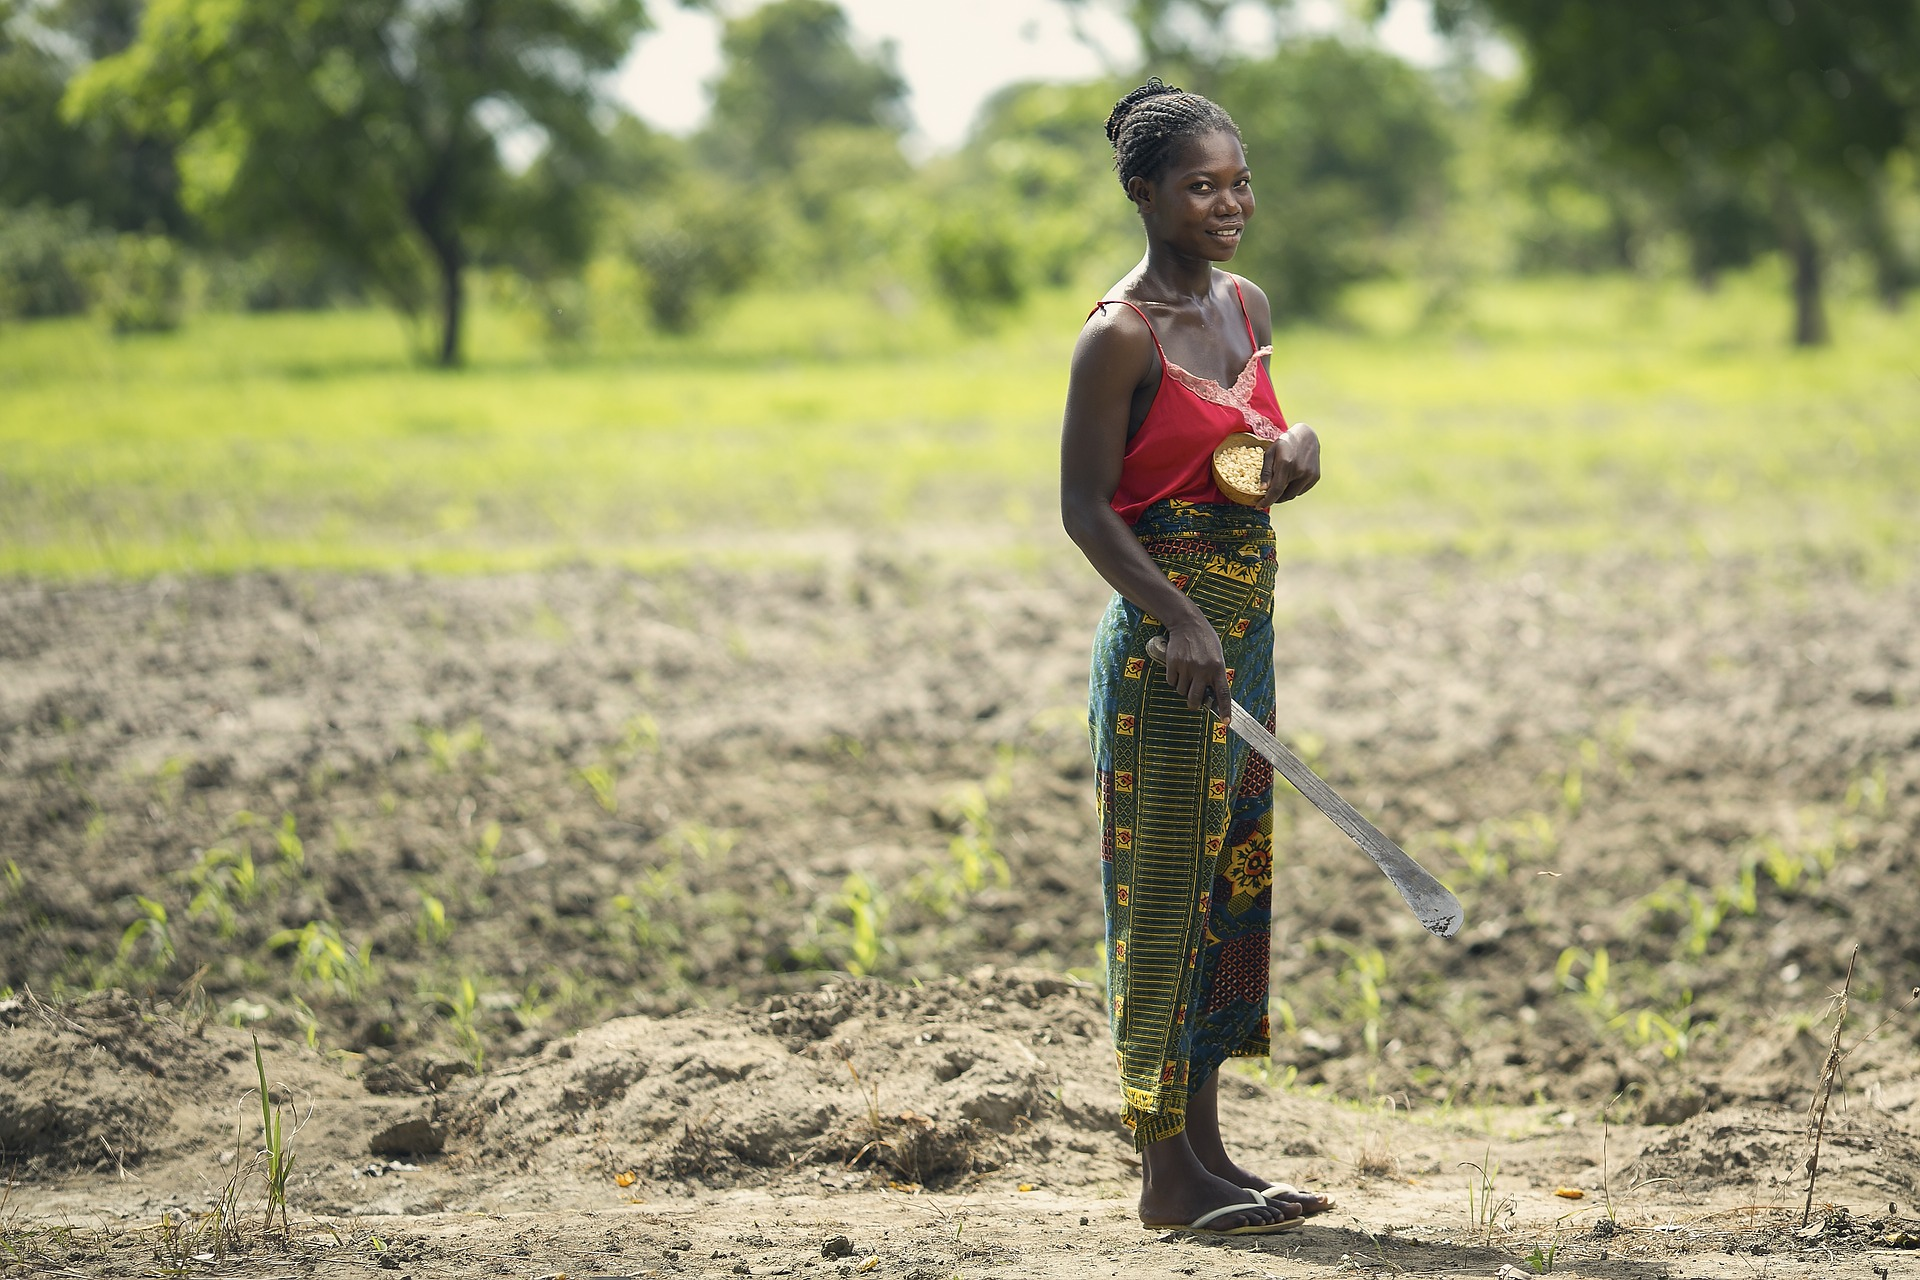 Female farmer from a rural African community. Cabo Delgado is overwhelmingly rural, with FID potentially de-risking investments into rural real assets, including agriculture and forestry. Photo credit: Pochogh